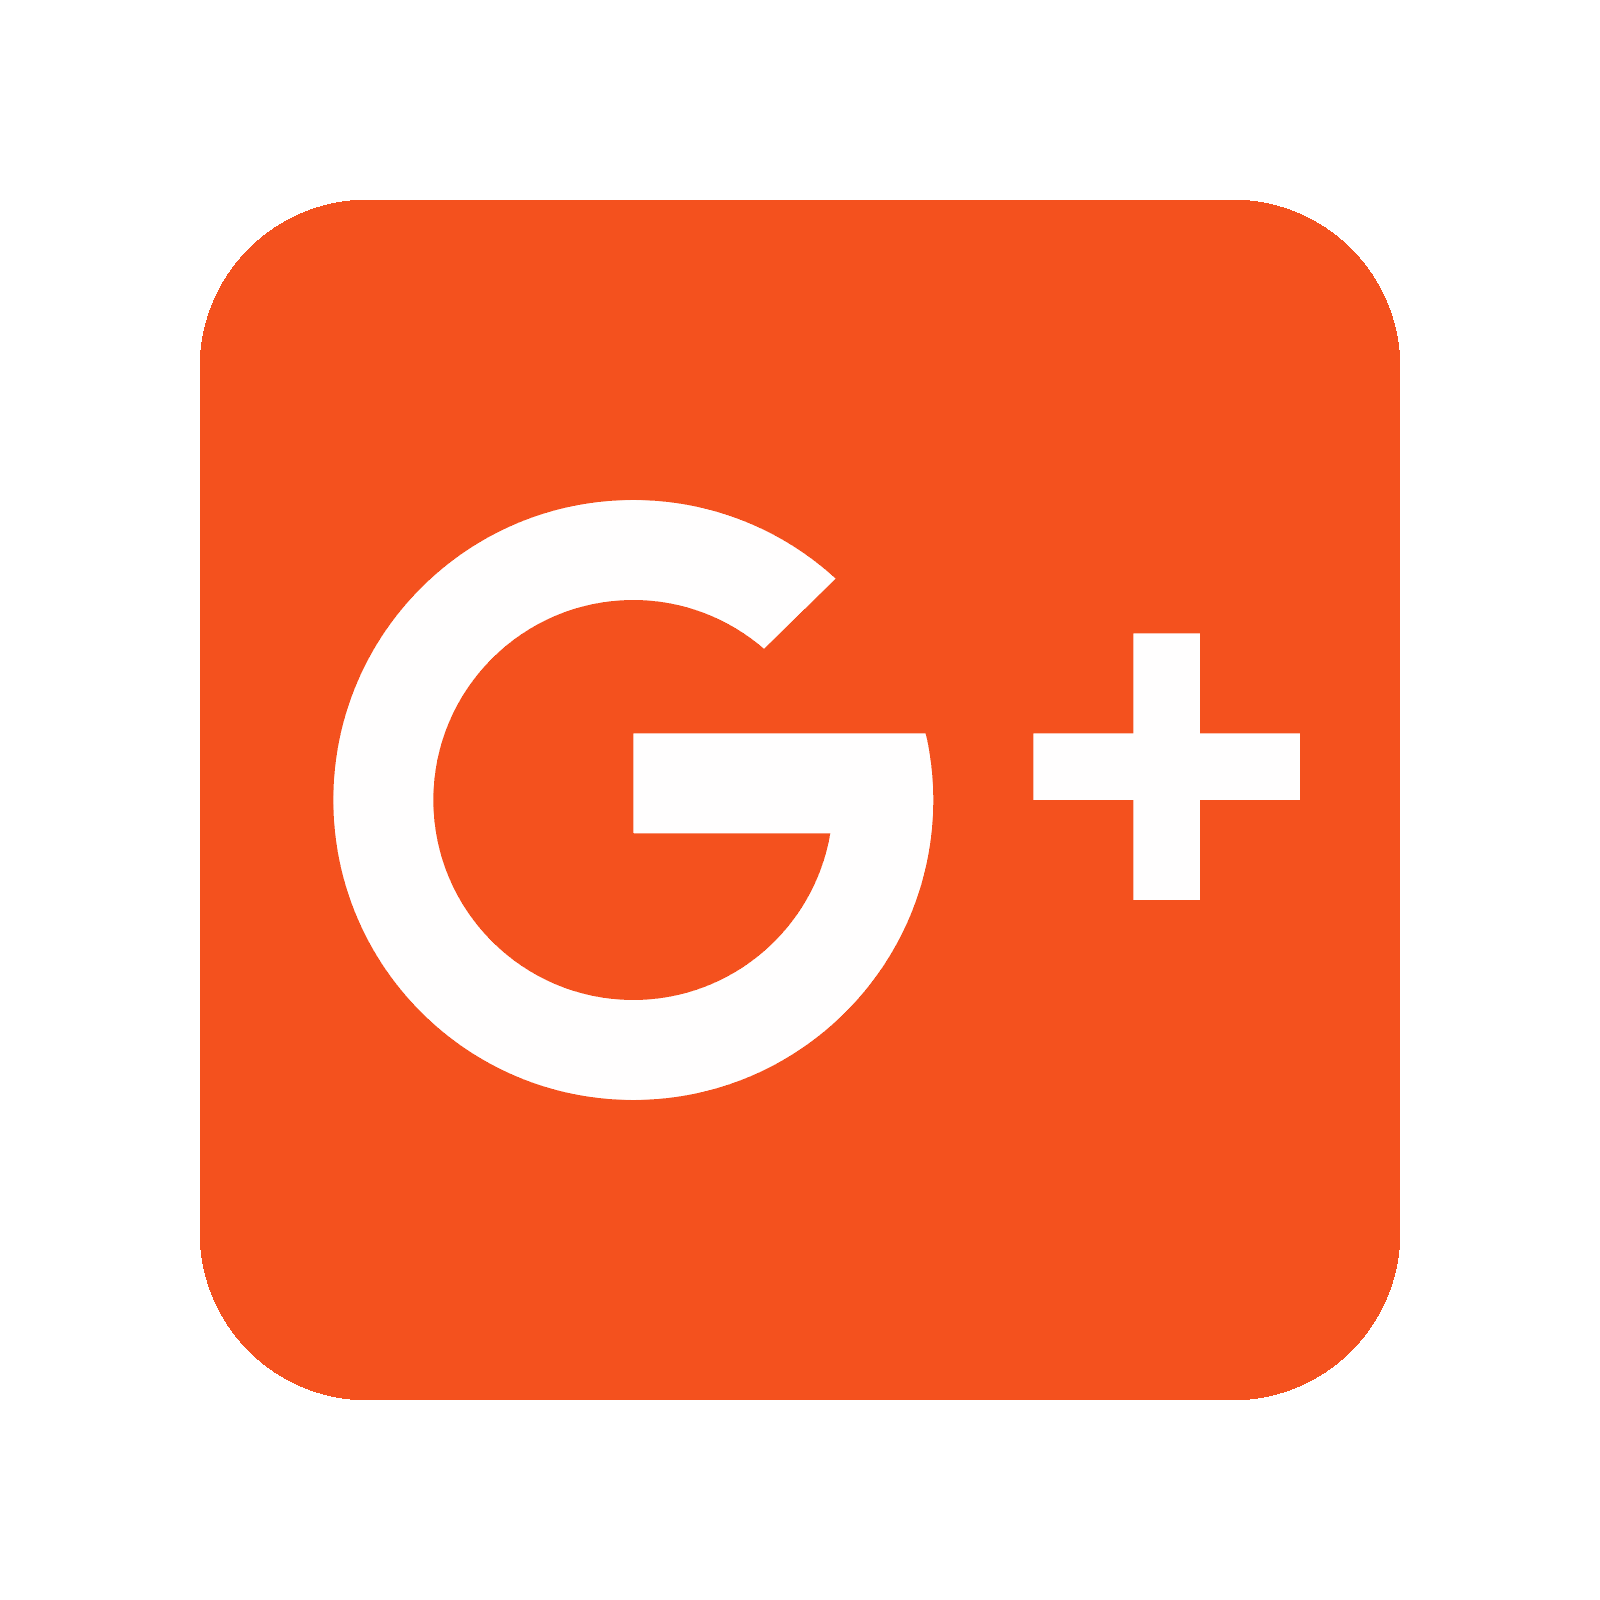 Gmail vector png. Google plus squared icon